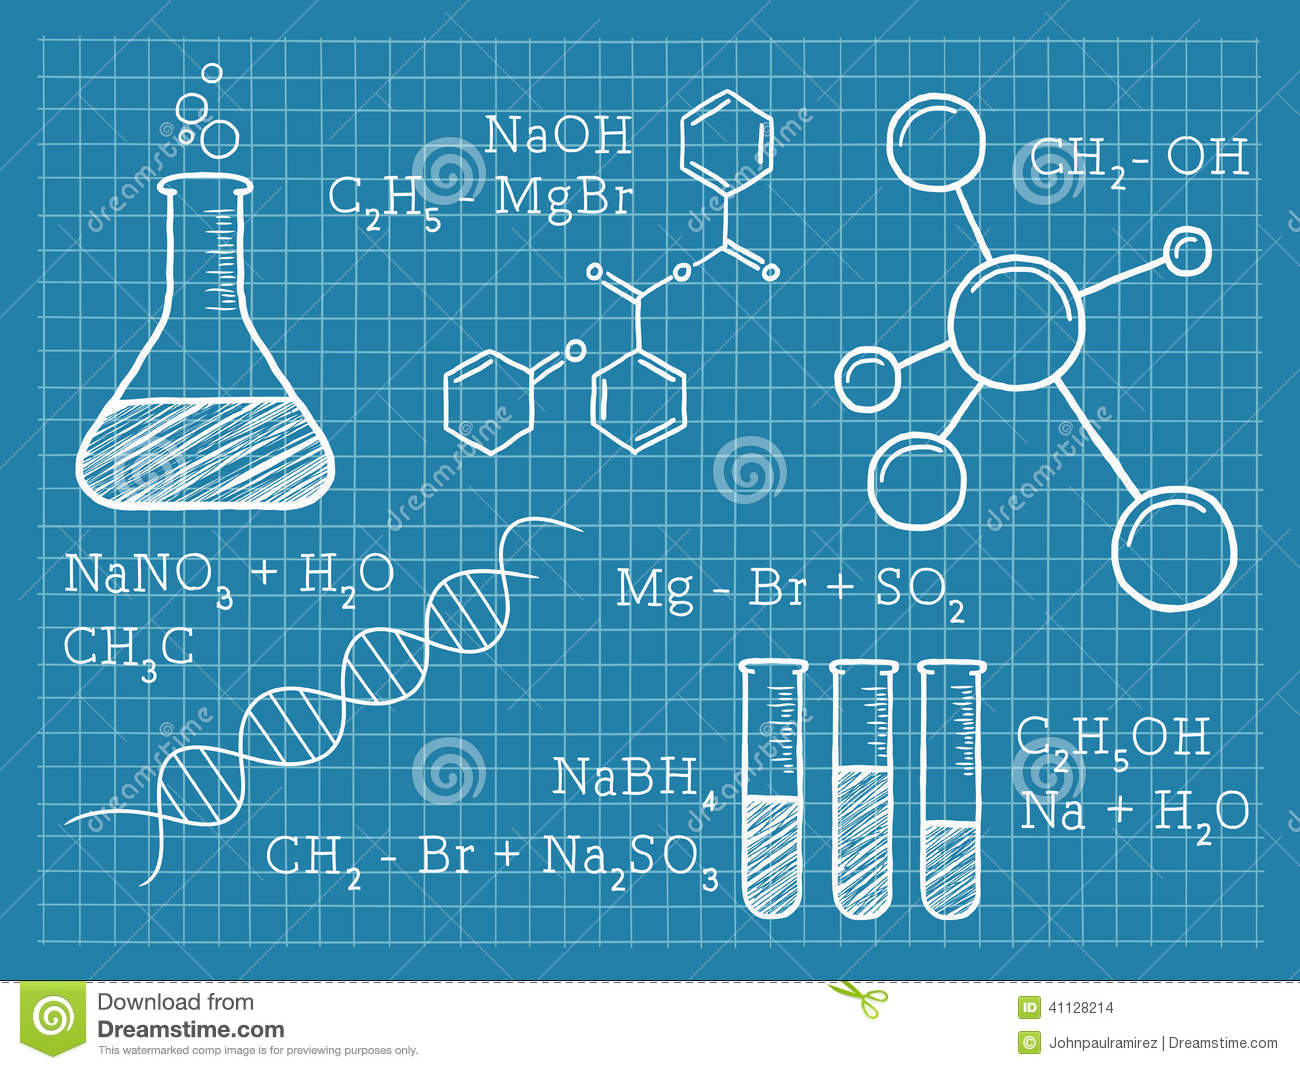 Chemistry stock illustrations 96282 chemistry stock chemistry stock illustrations 96282 chemistry stock illustrations vectors clipart dreamstime malvernweather Gallery